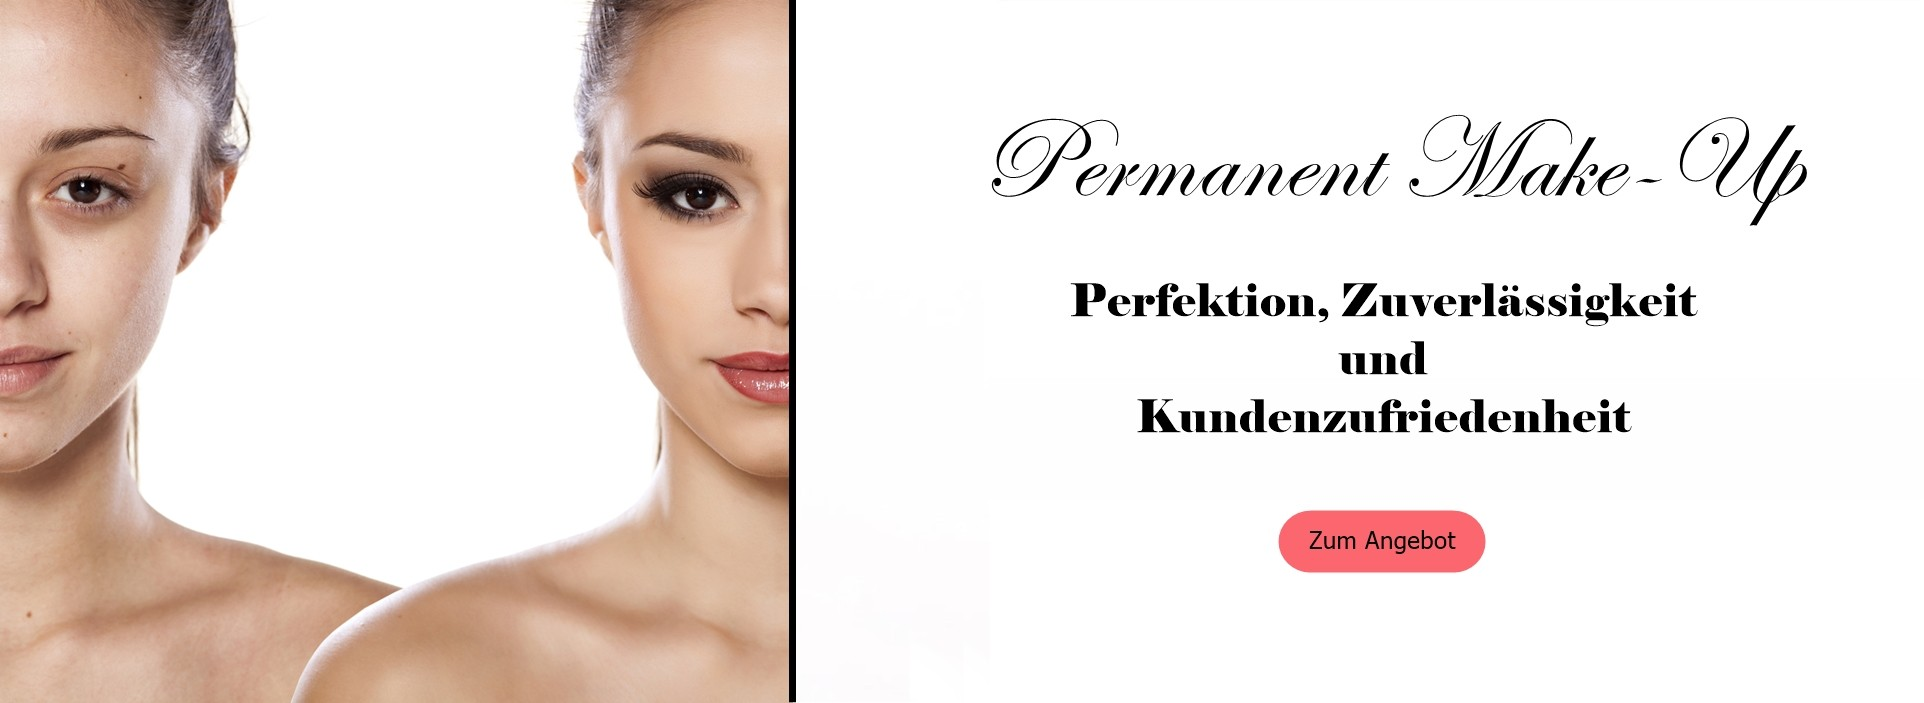 Julia Unger Rheine Permanent Make-Up Studio